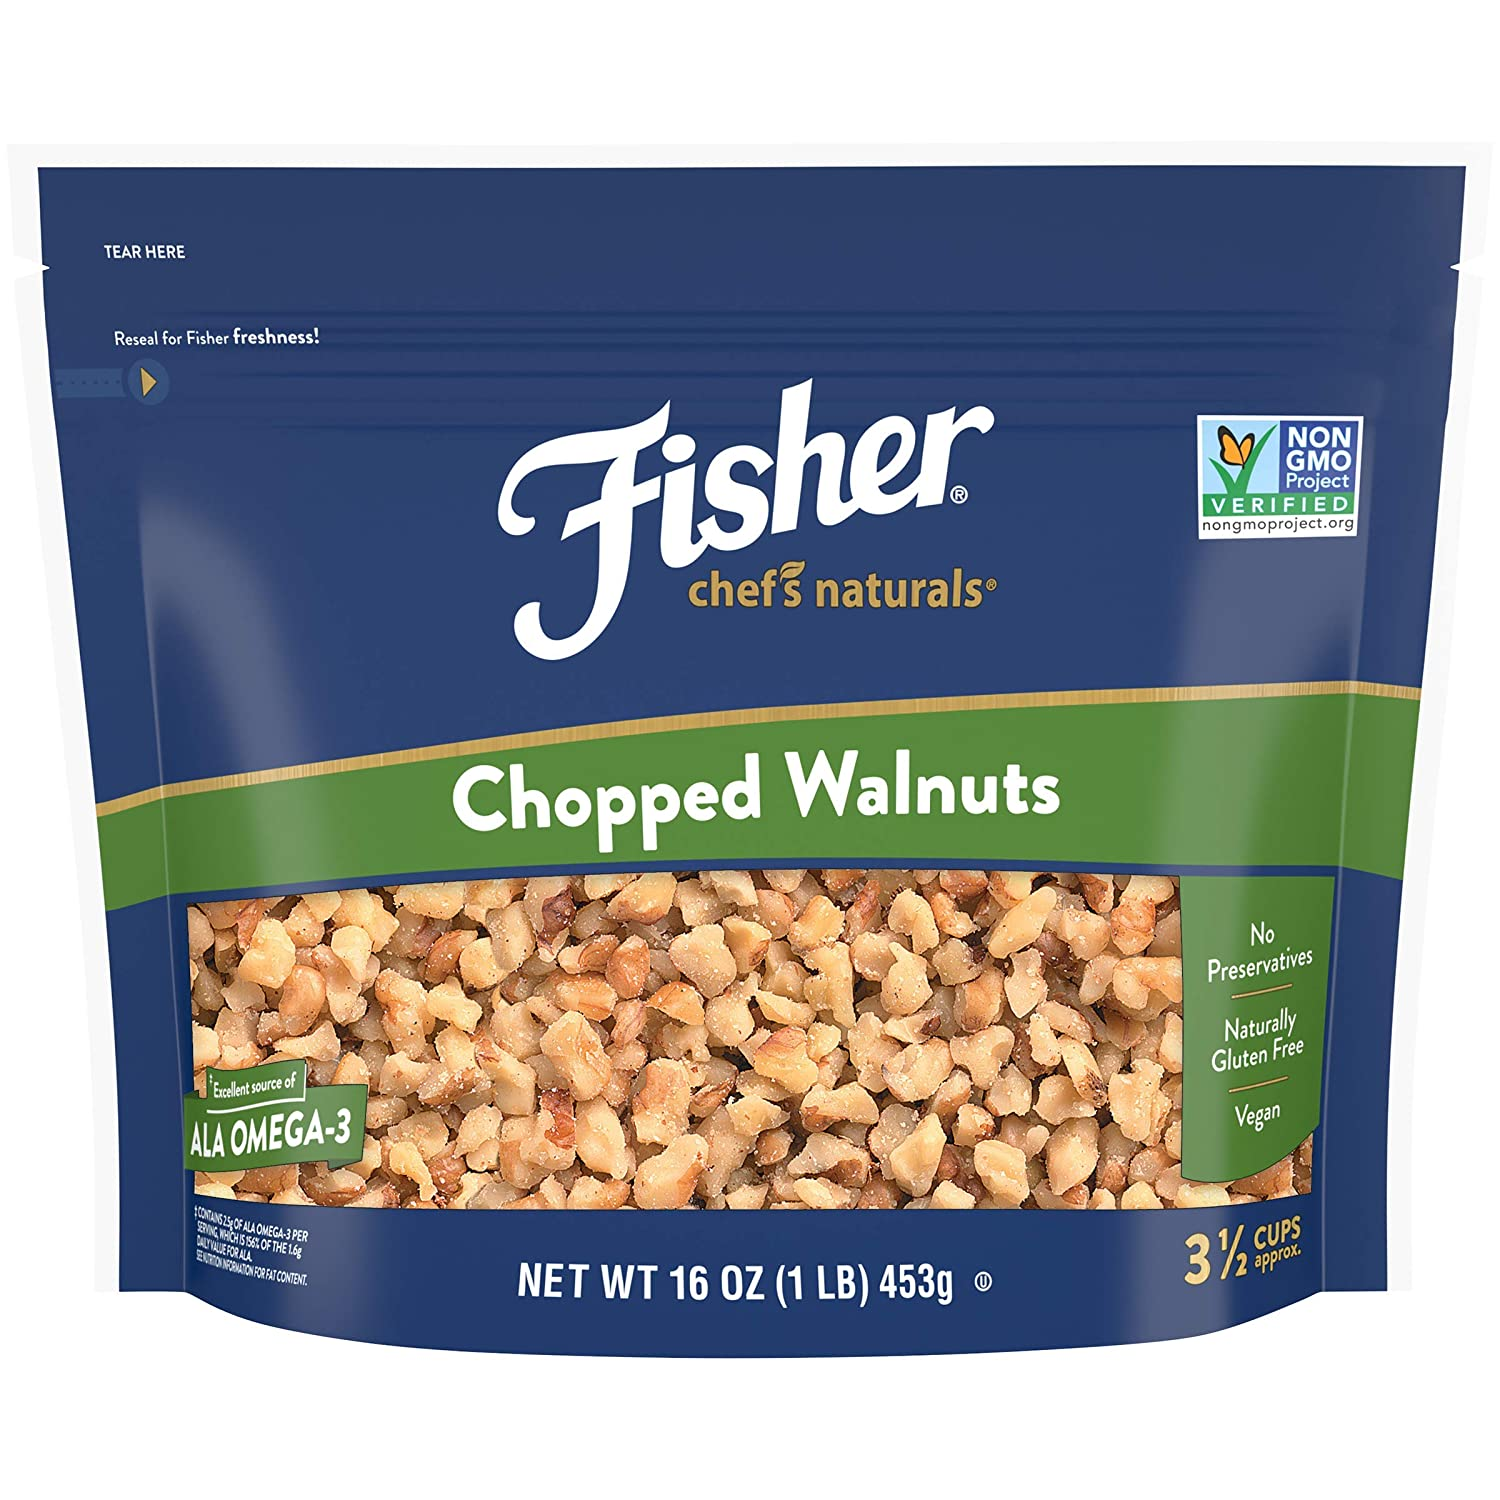 FISHER Chef's Naturals Chopped security Walnuts Naturally oz Limited time trial price 16 Gluten